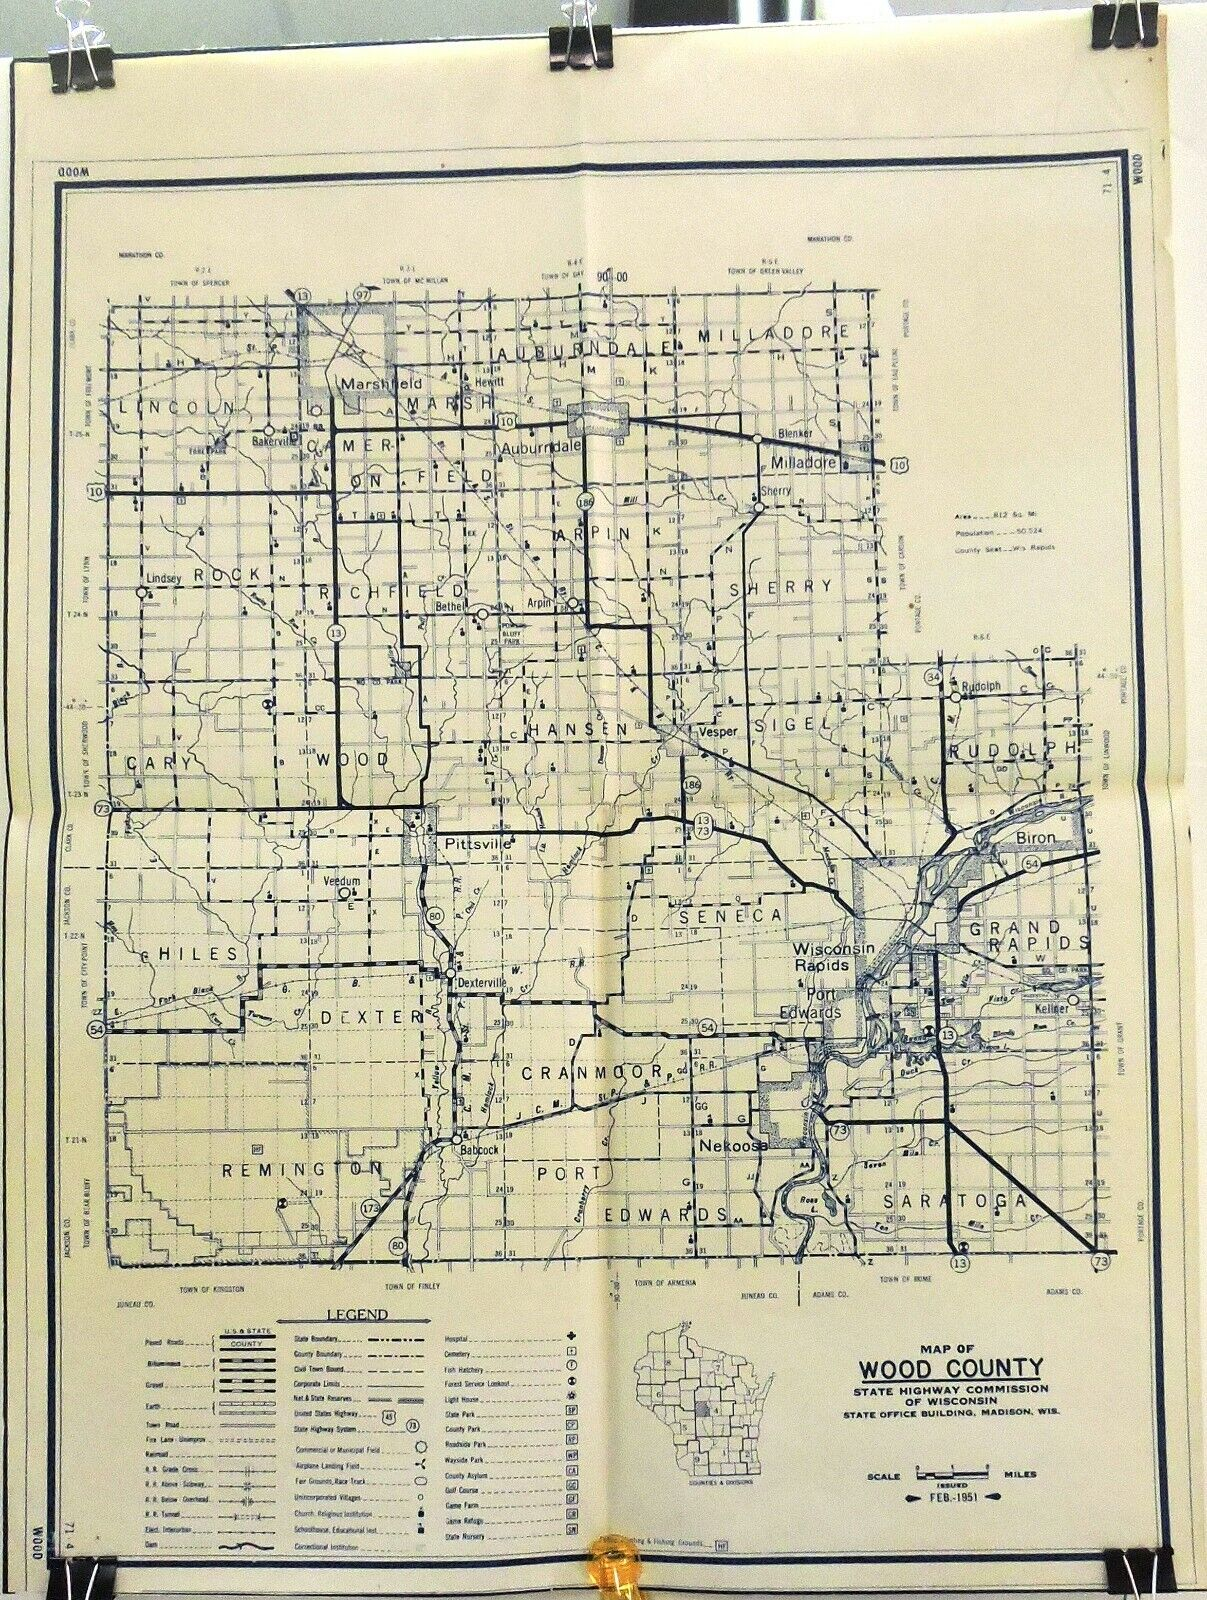 Wood County, Wisconsin - 1951 State Highway Commission 28 X 20 Map. - $9.95